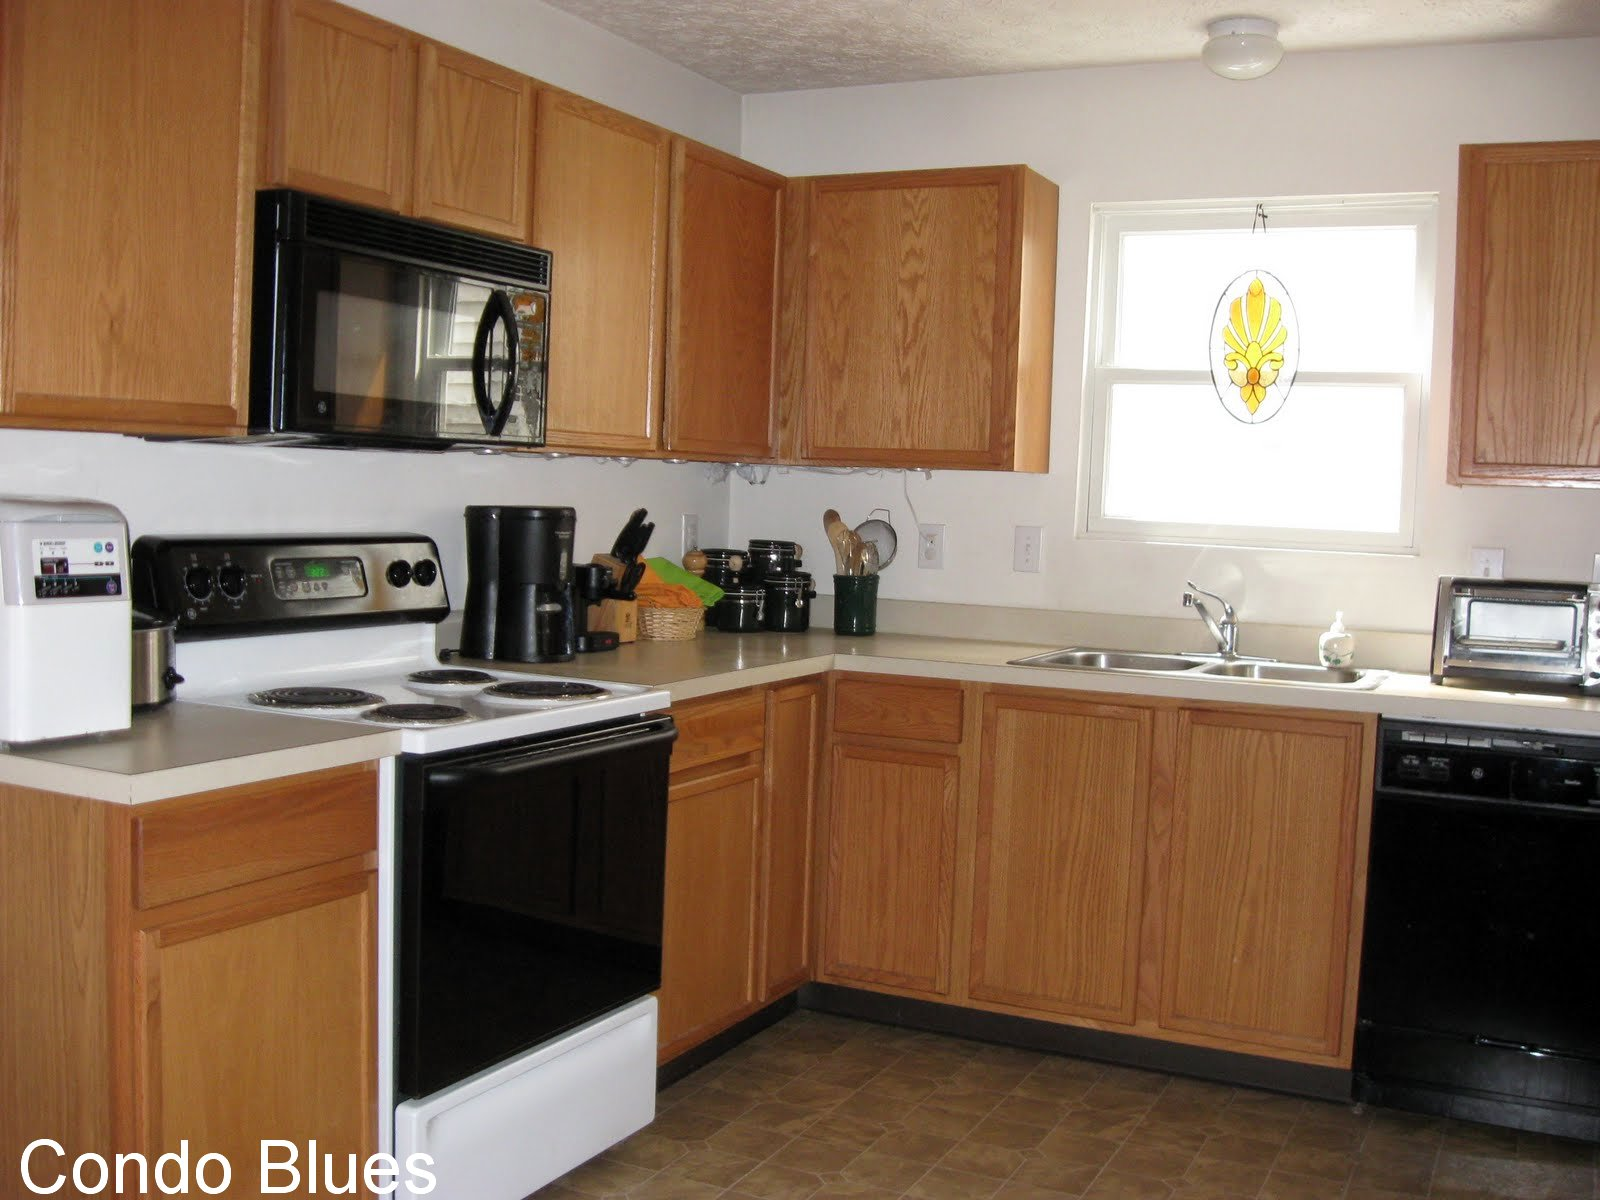 Condo blues i dream of new kitchens for House kitchen cabinets